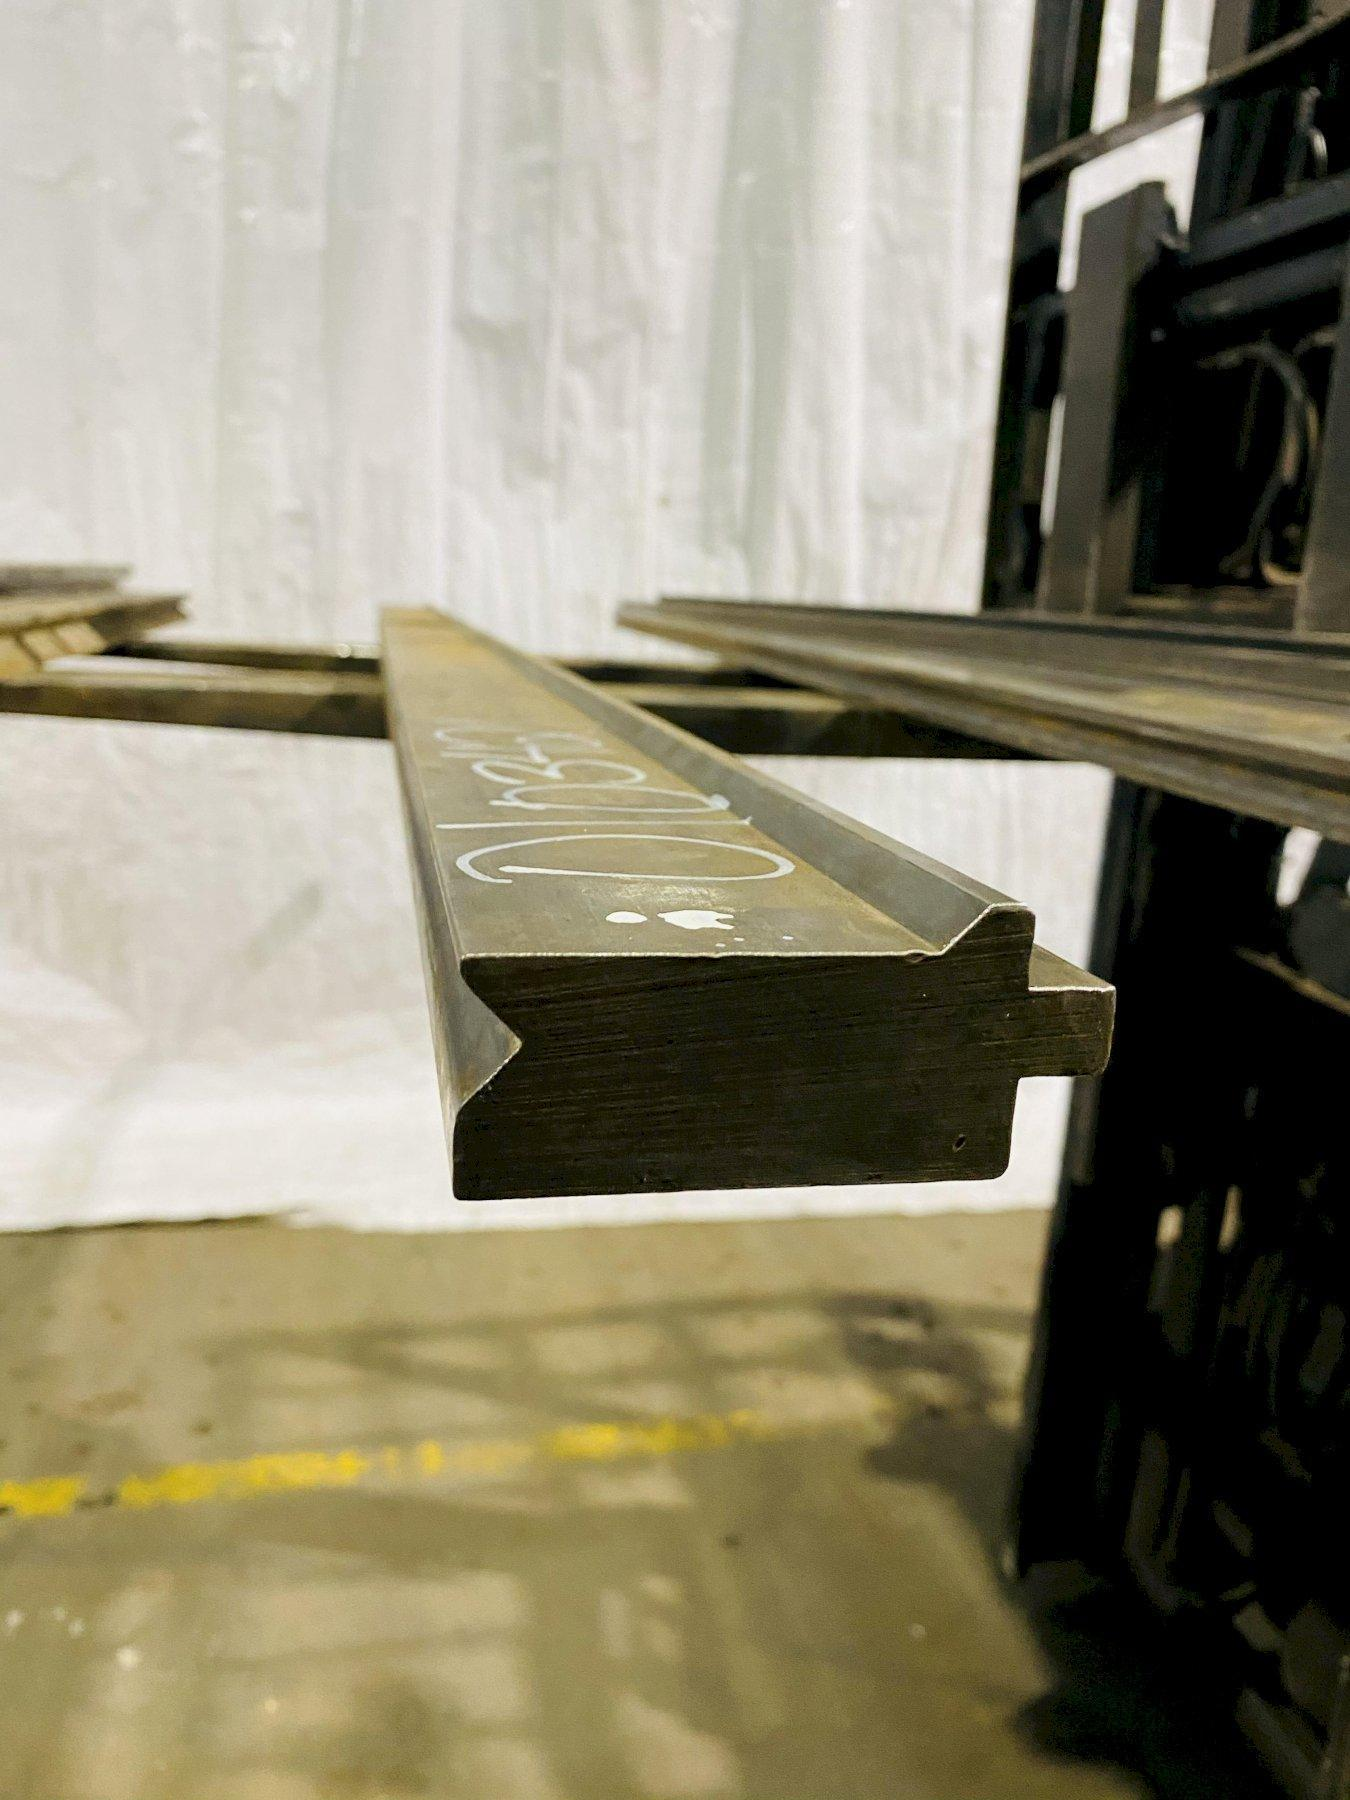 "6'(72"") PRESS BRAKE BOTTOM 90 DEGREE FEMALE V-DIE. STOCK # 0103421"